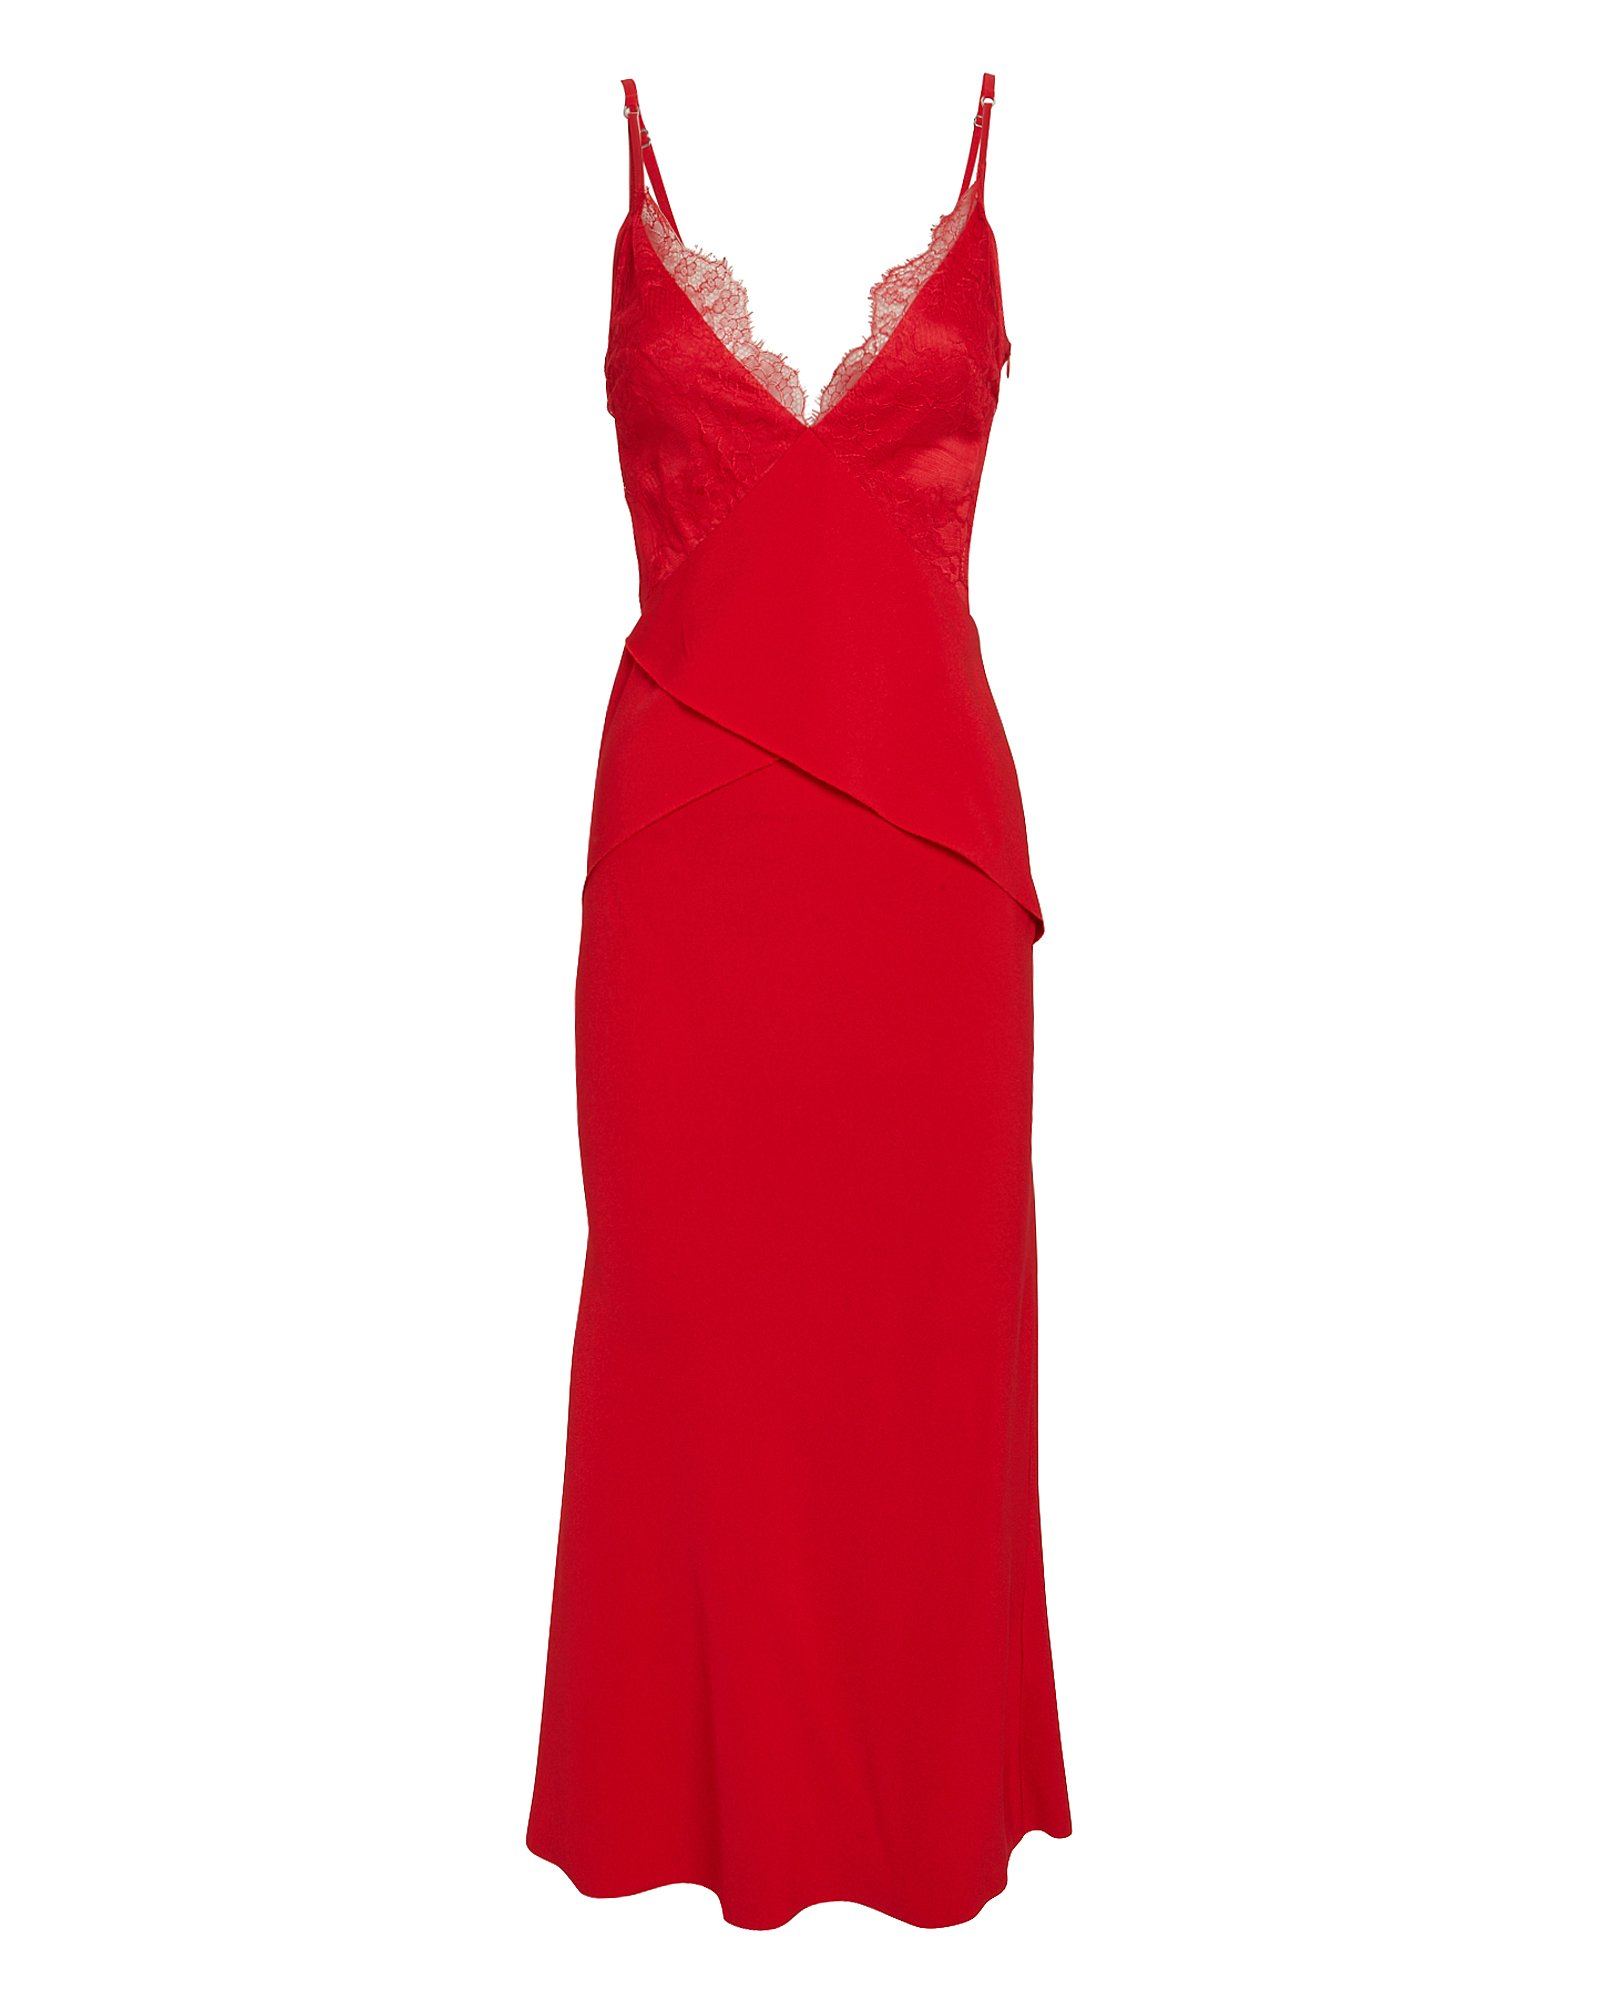 Dion Lee Dresses Stencil Lace Red Dress